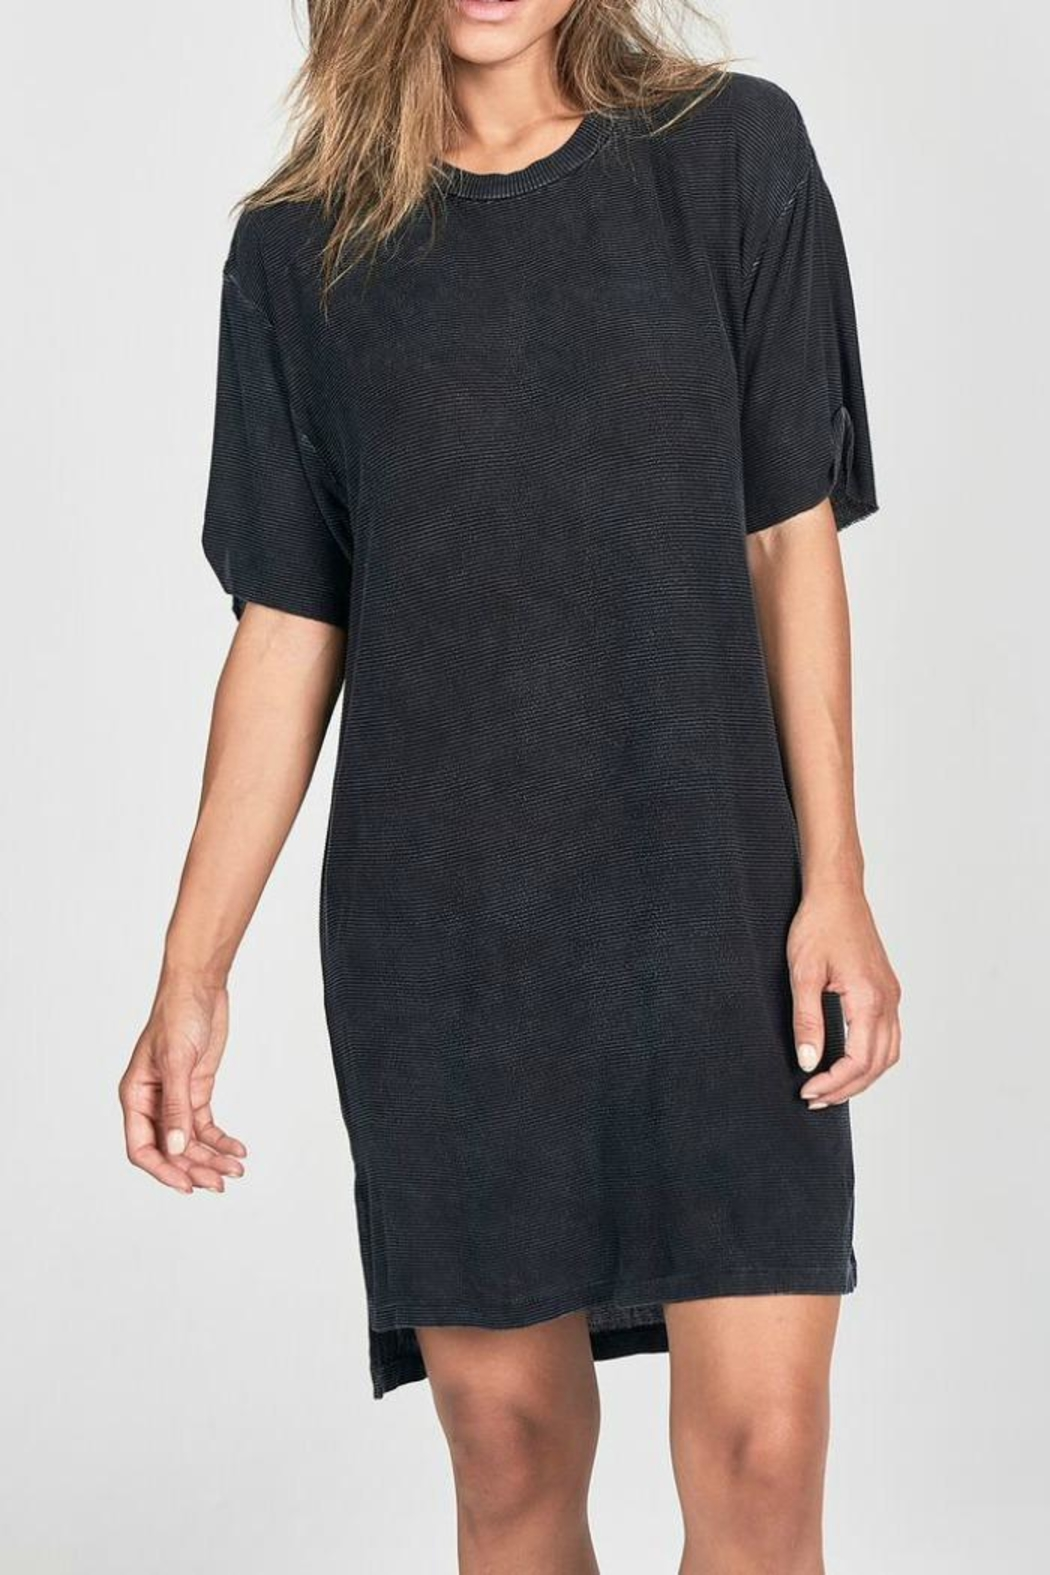 Joah Brown Killer T-Shirt Dress - Main Image